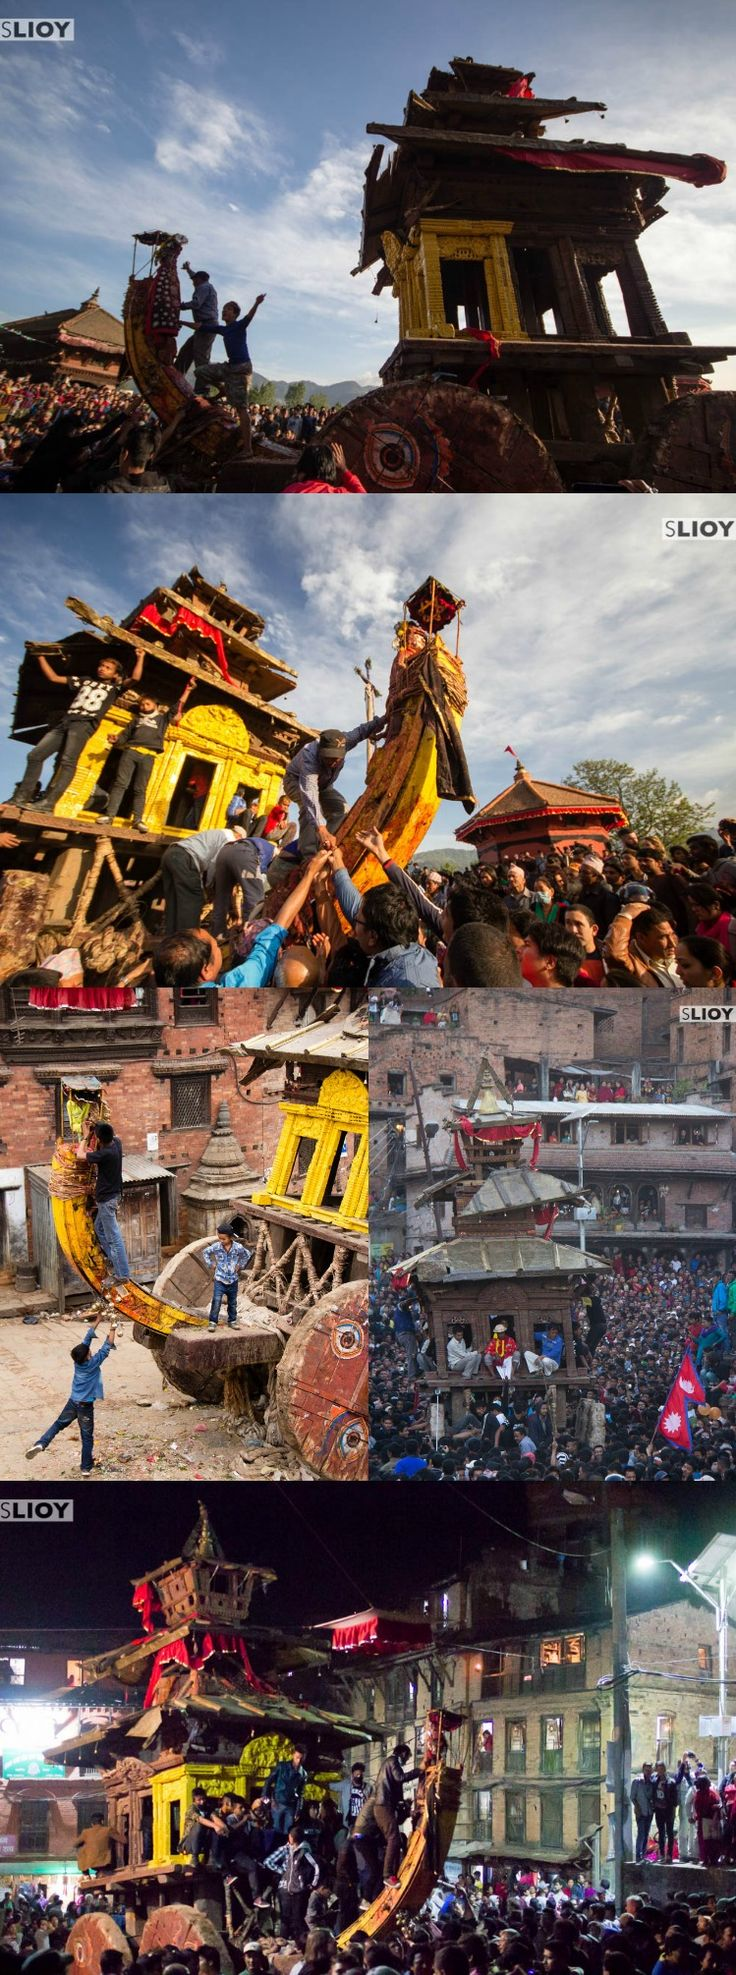 Of Chariots and Tongue Piercings - The Bisket Jatra festival in Bhaktapur, Nepal. More at  http://www.monkboughtlunch.com/chariots-pierced-tongues-bisket-jatra-festival-bhaktapur-nepal/